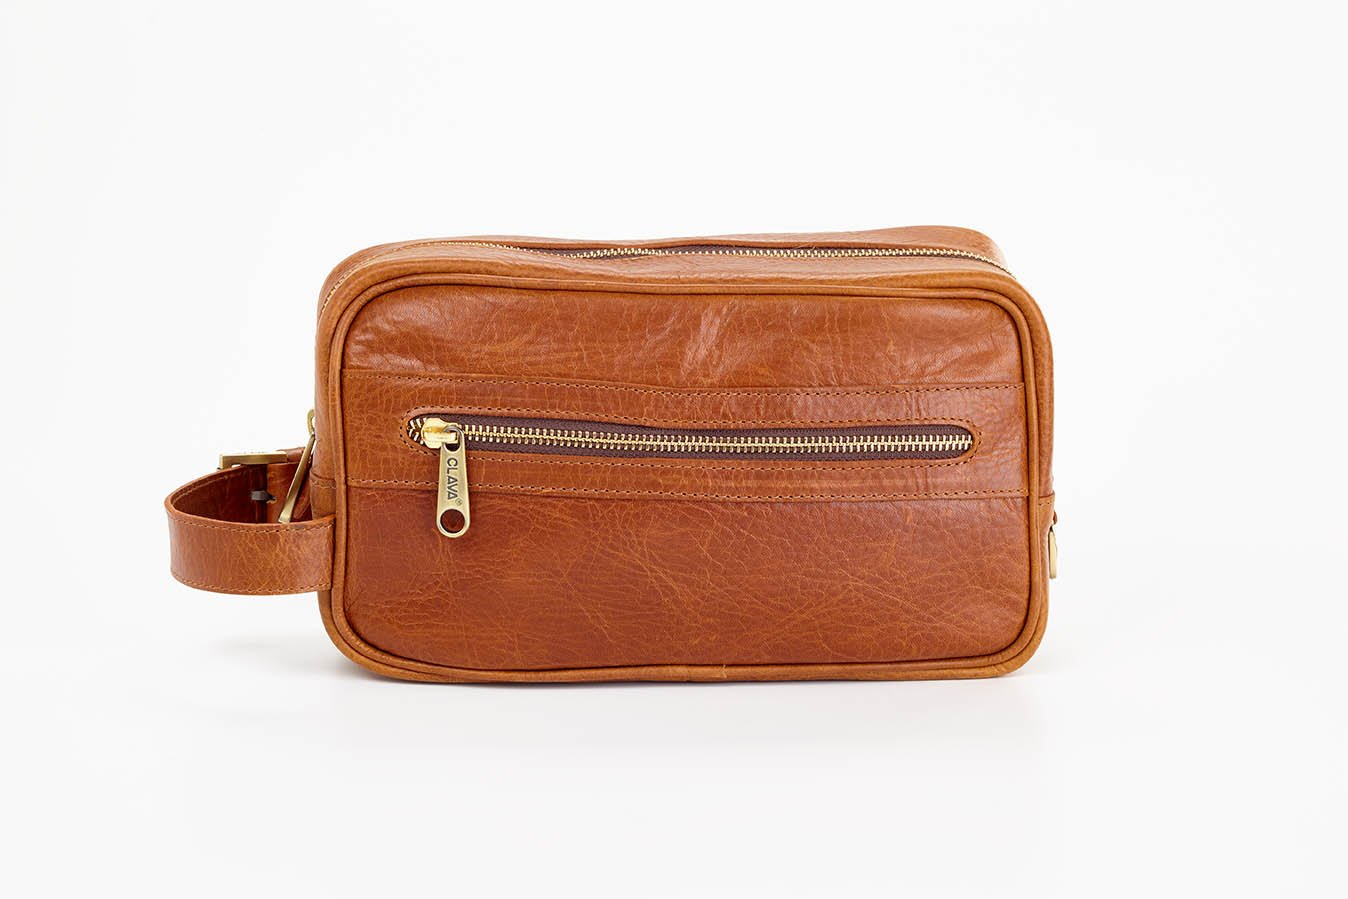 Clava Santa Fe Leather Toiletry Case, Tan by Clava